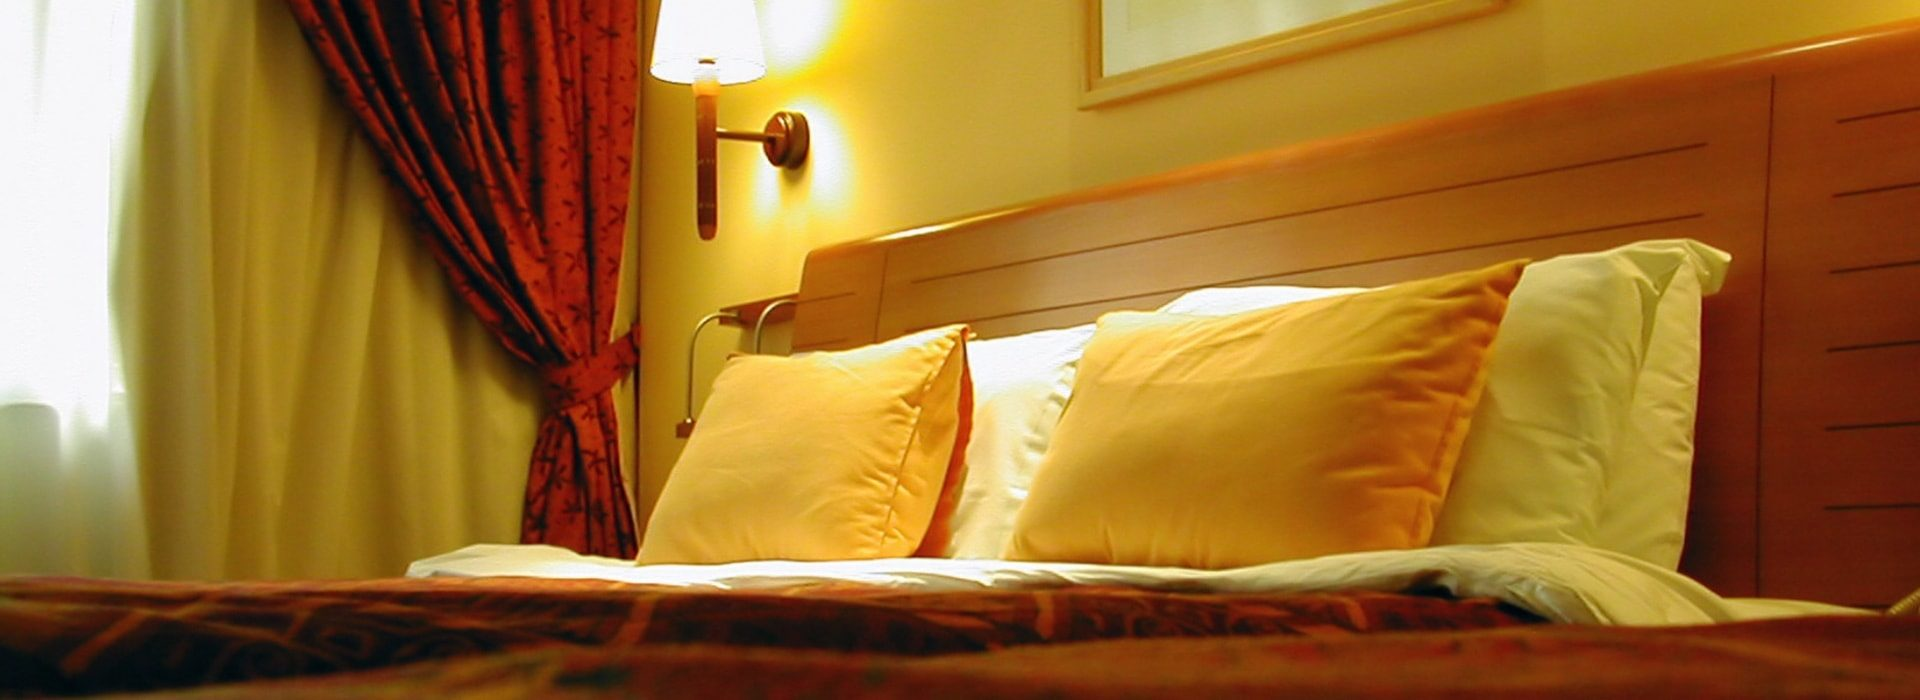 Close up view of pillows on bed leaning against headboard